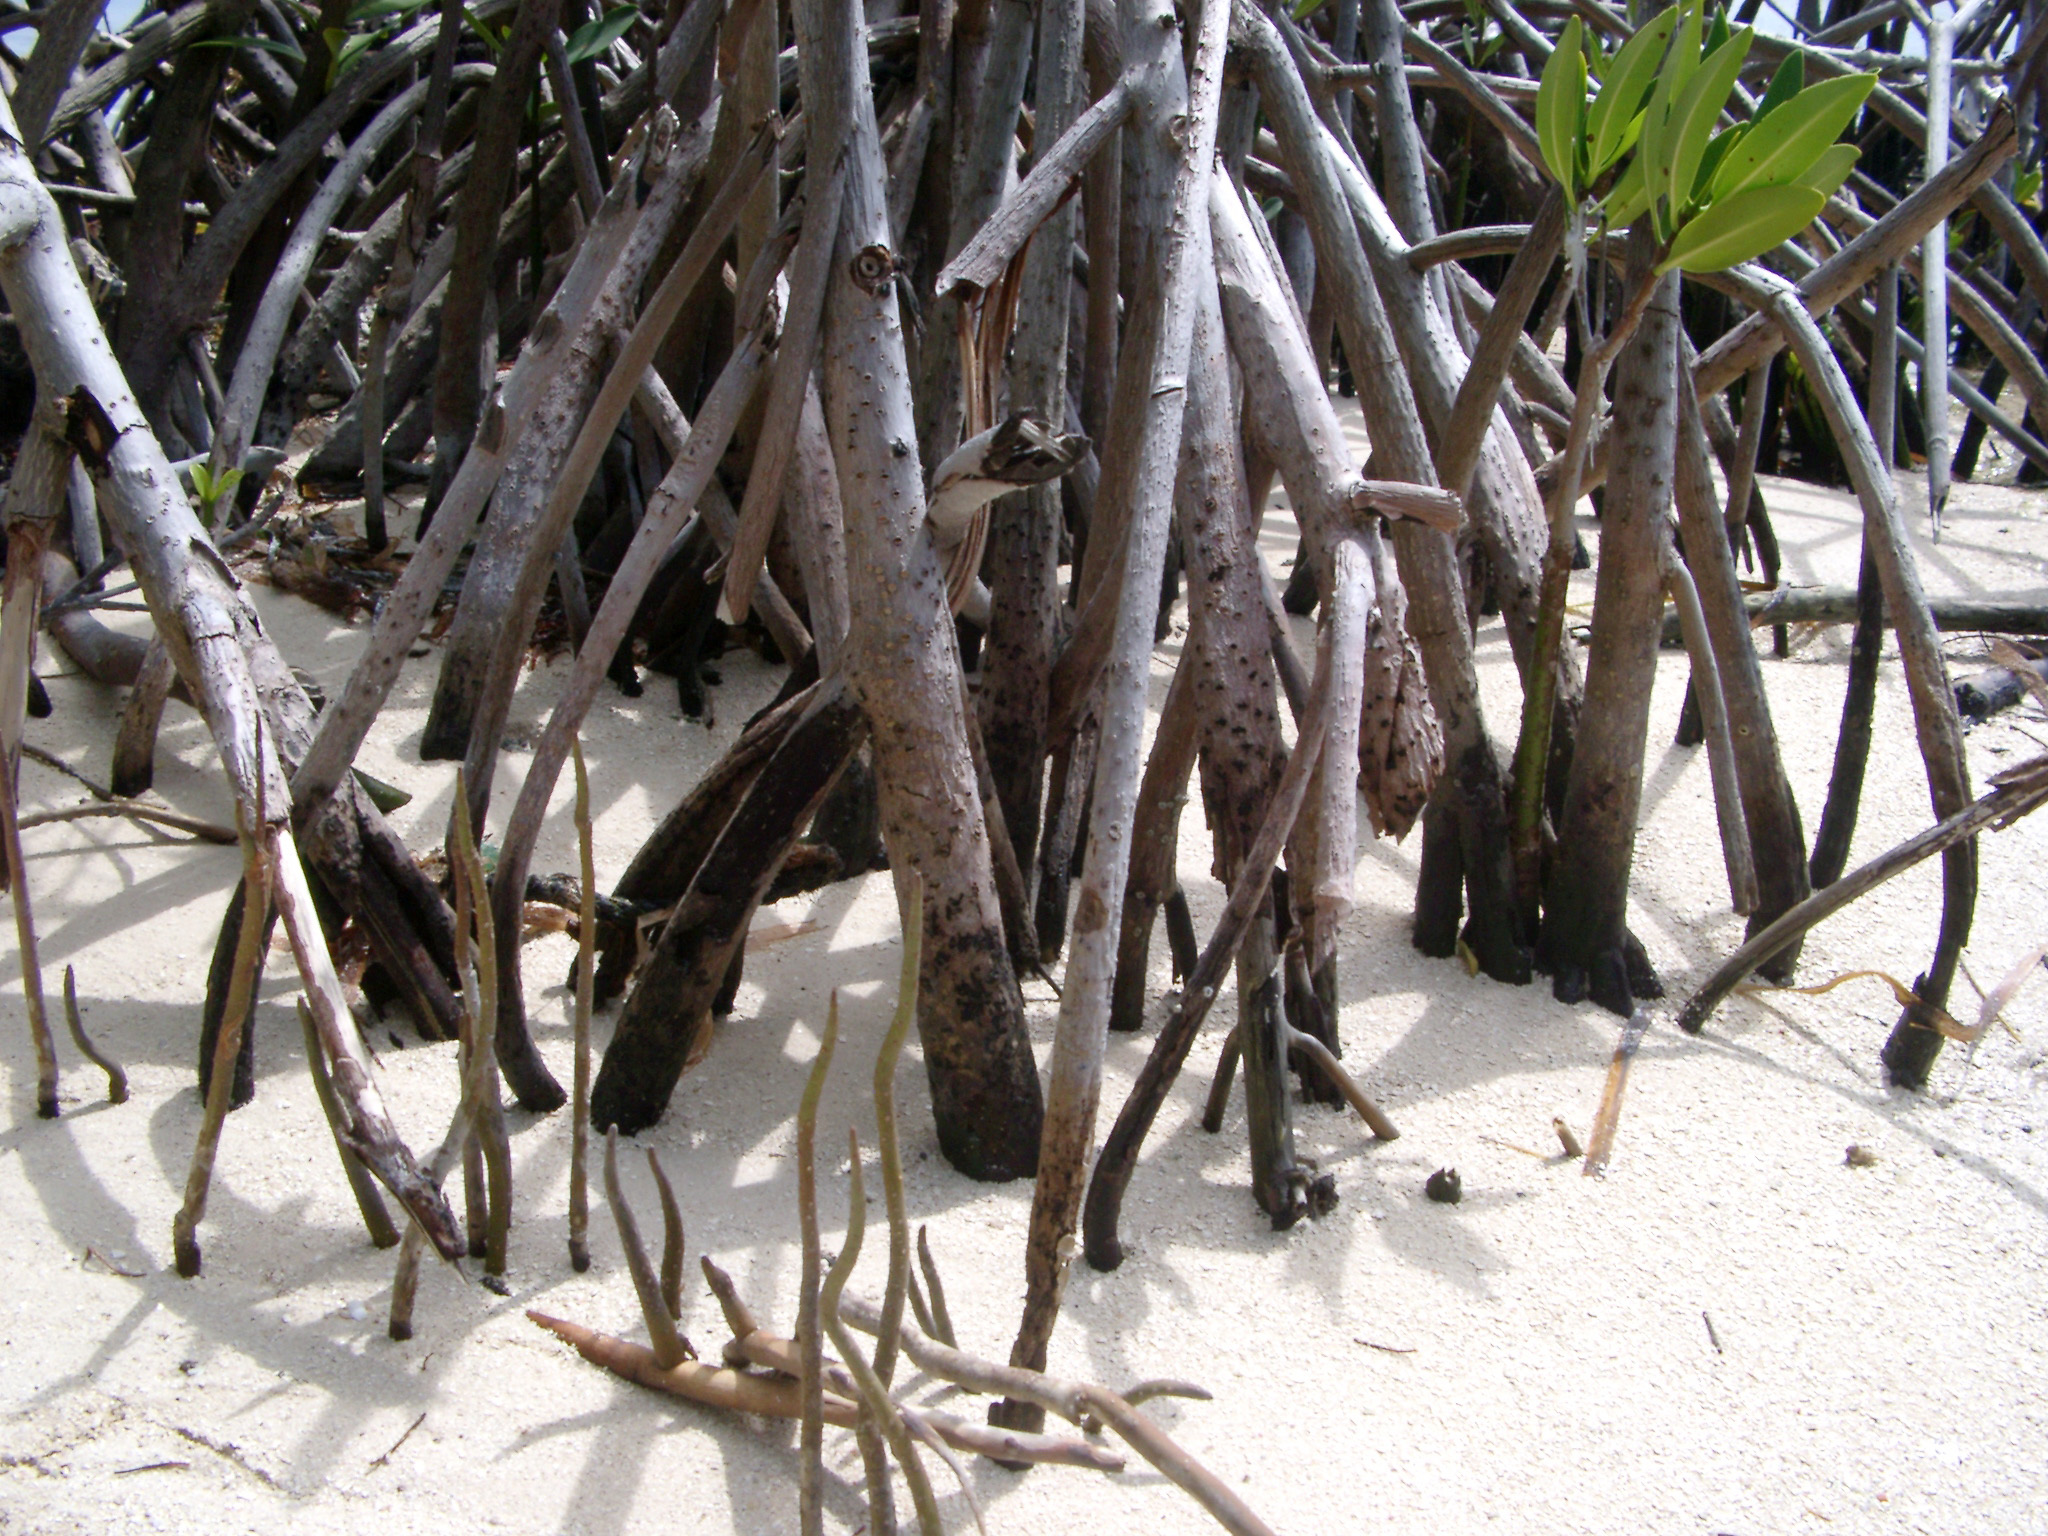 Roots of mangrove trees in golden beach sand in a coastal swamp in Mexico